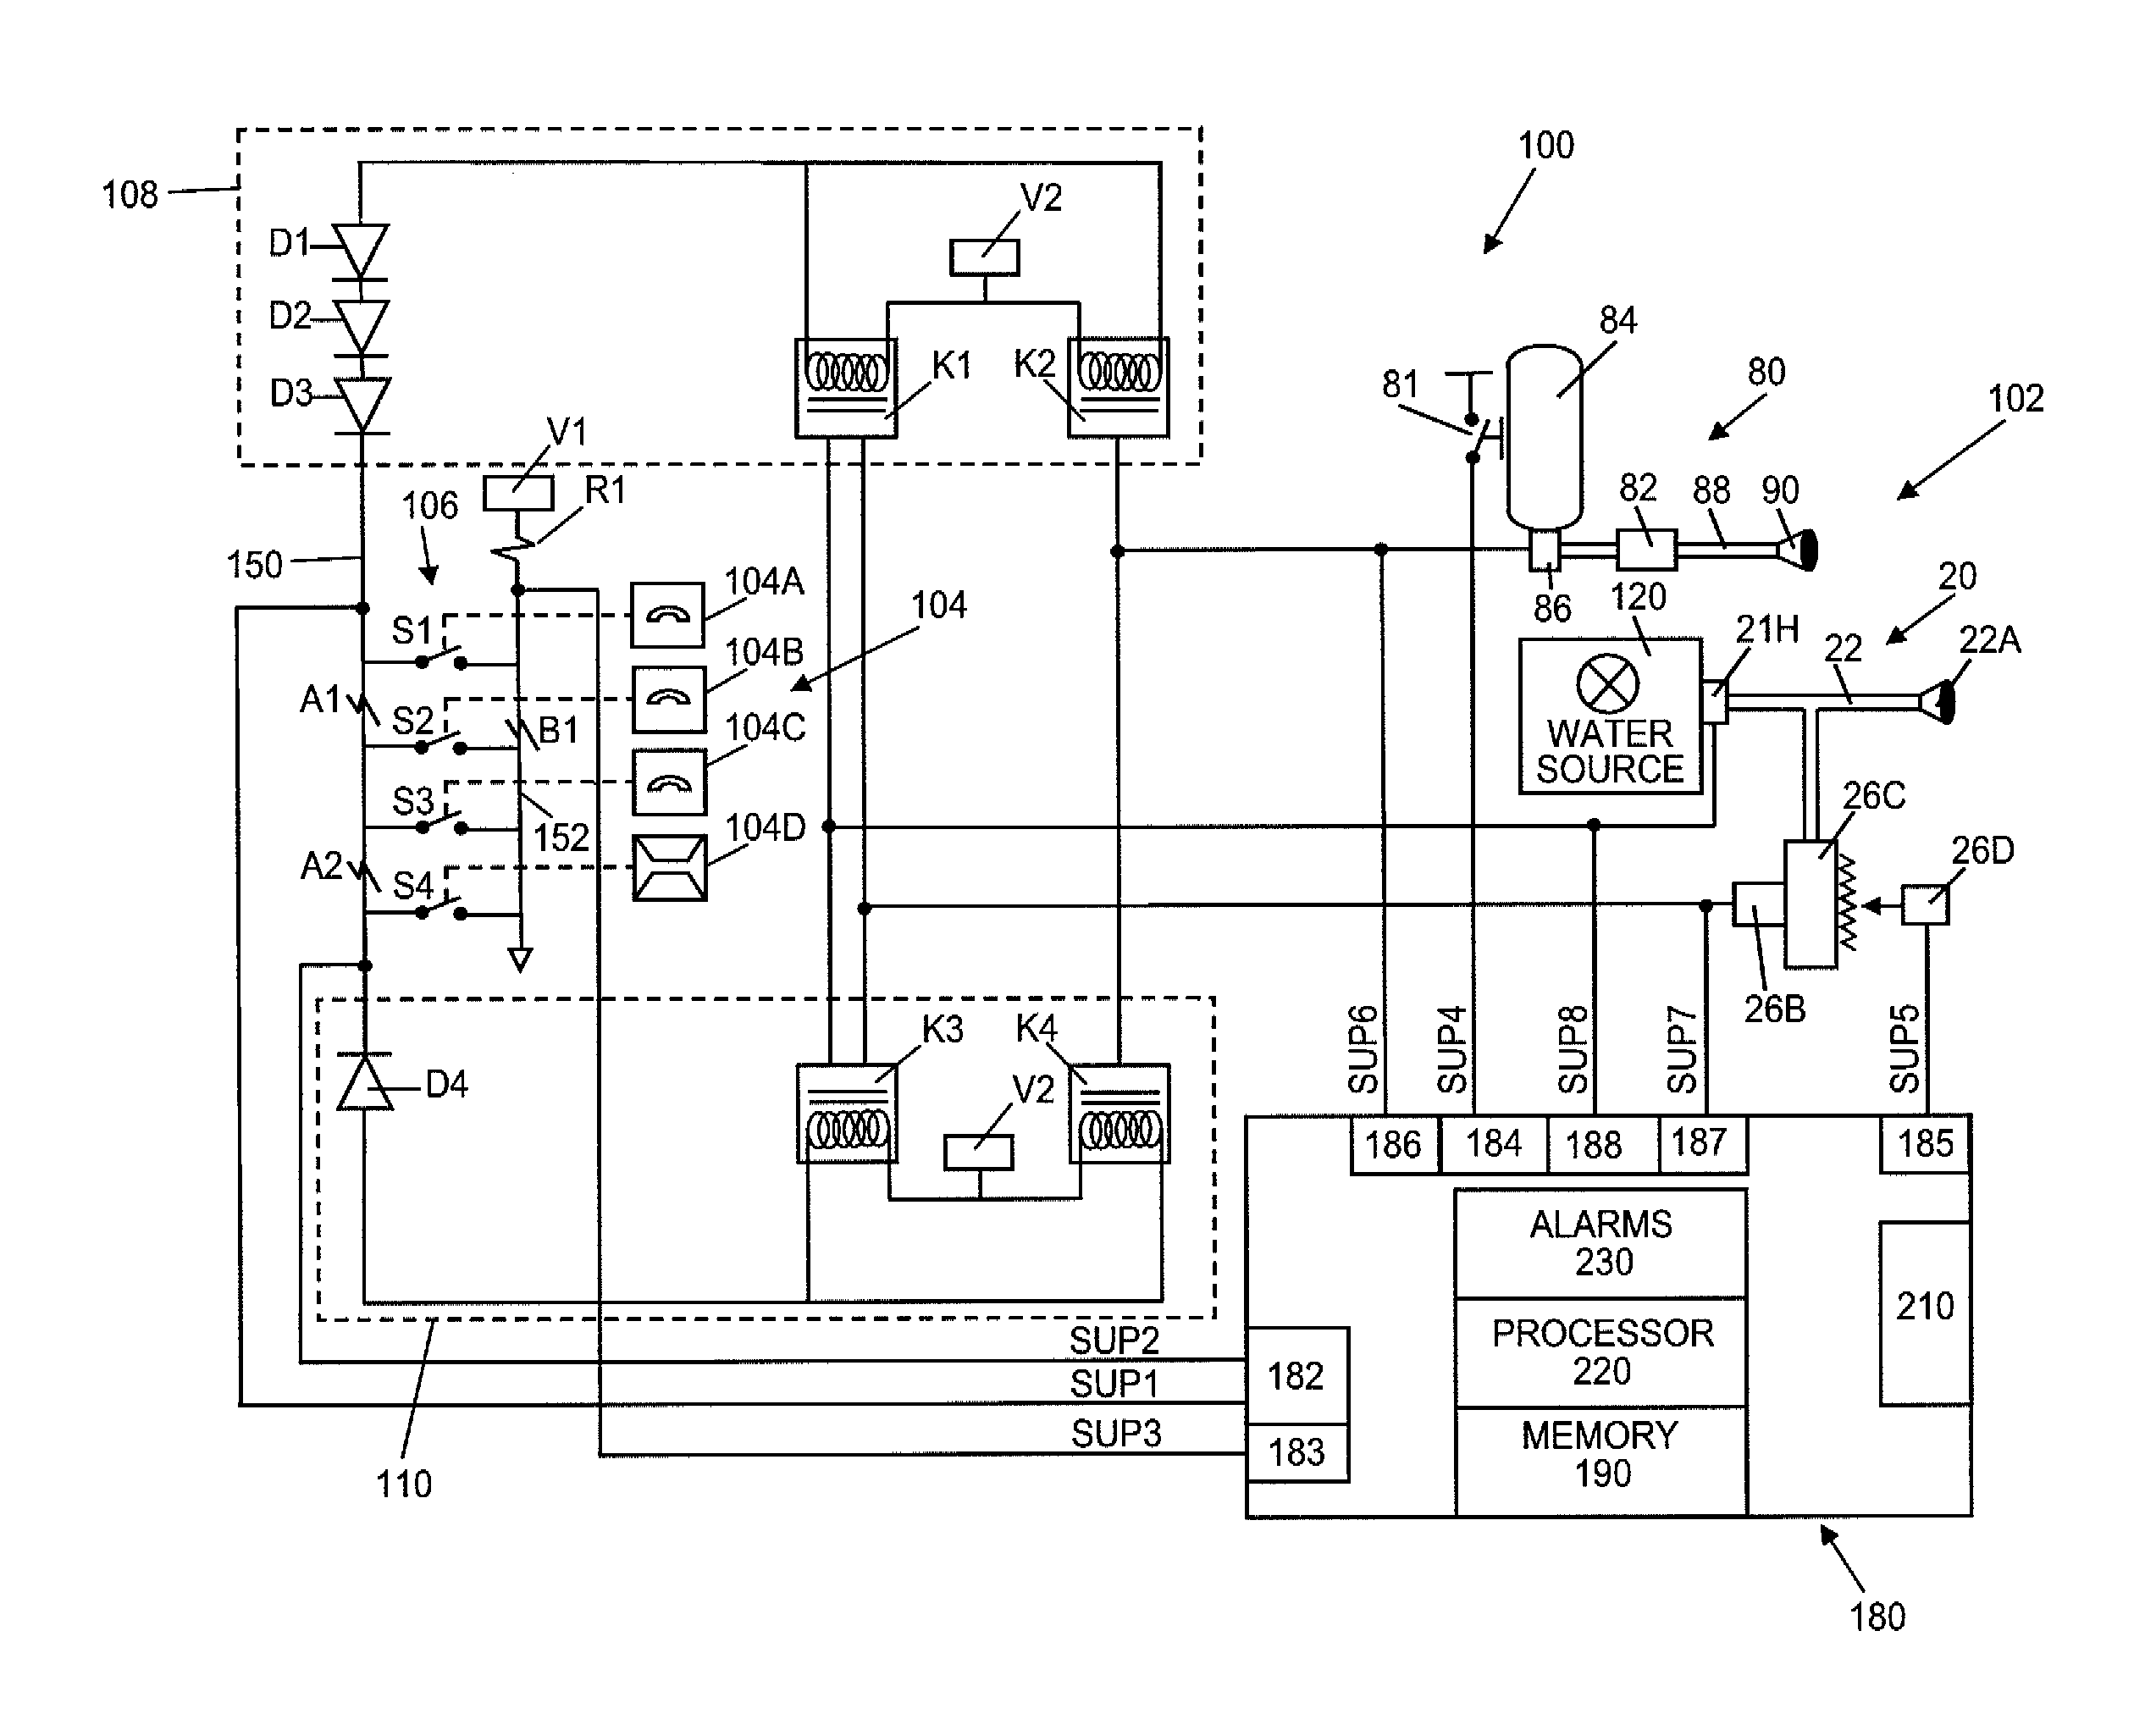 Kitchenhood Fire Contol With Ansul System Wiring Diagram